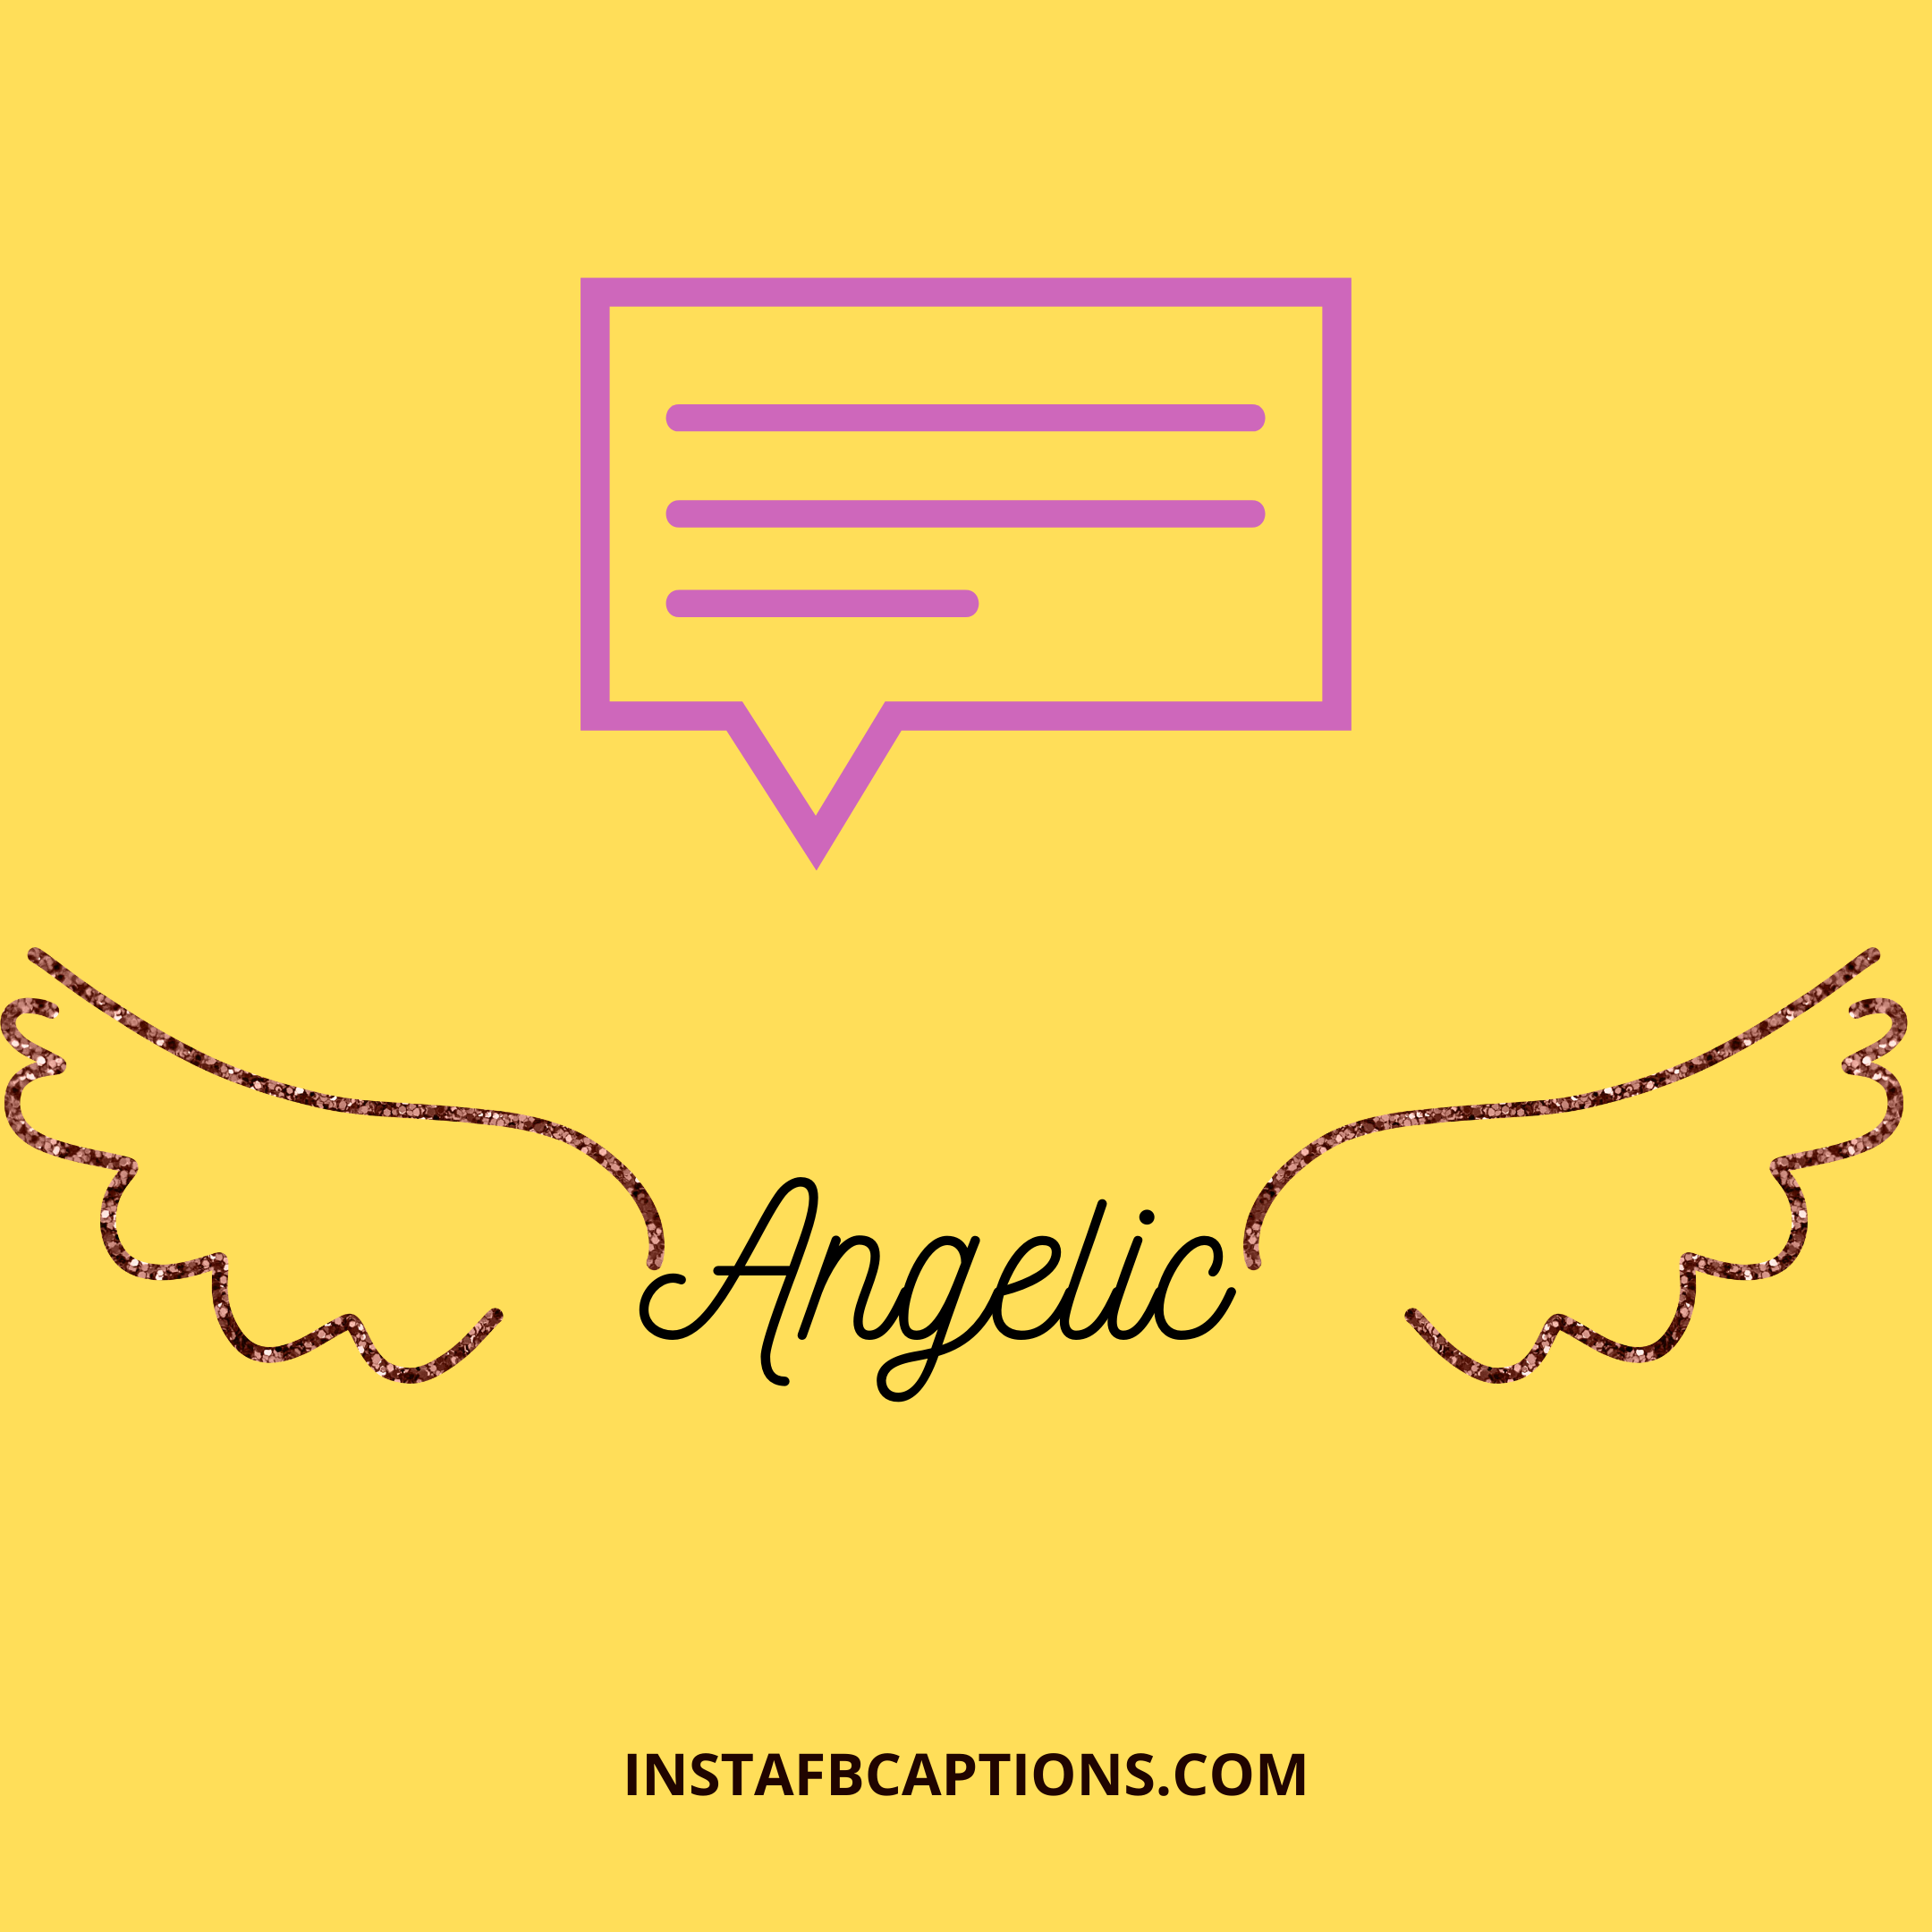 Angelic  - Angelic - 600+ Best COMMENTS for GIRLS PICS 2021